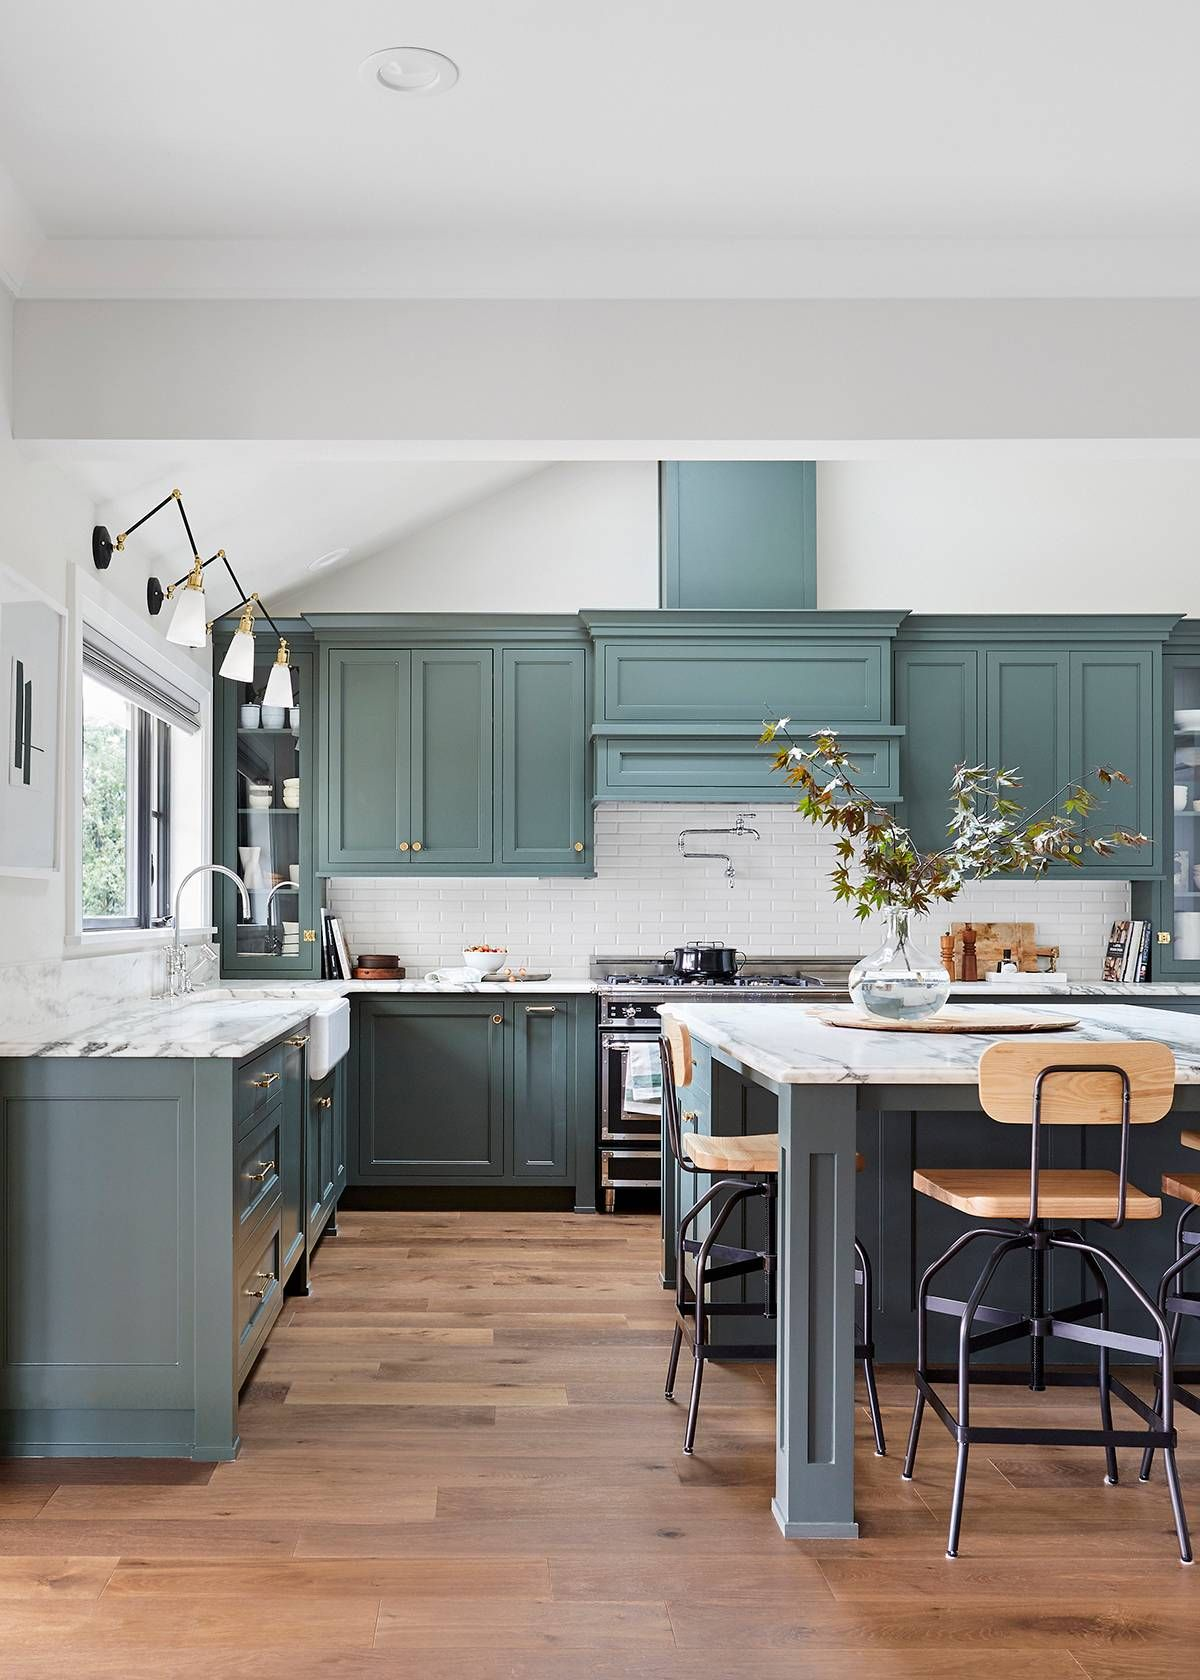 Youull be seeing this shade of green in every kitchen come in